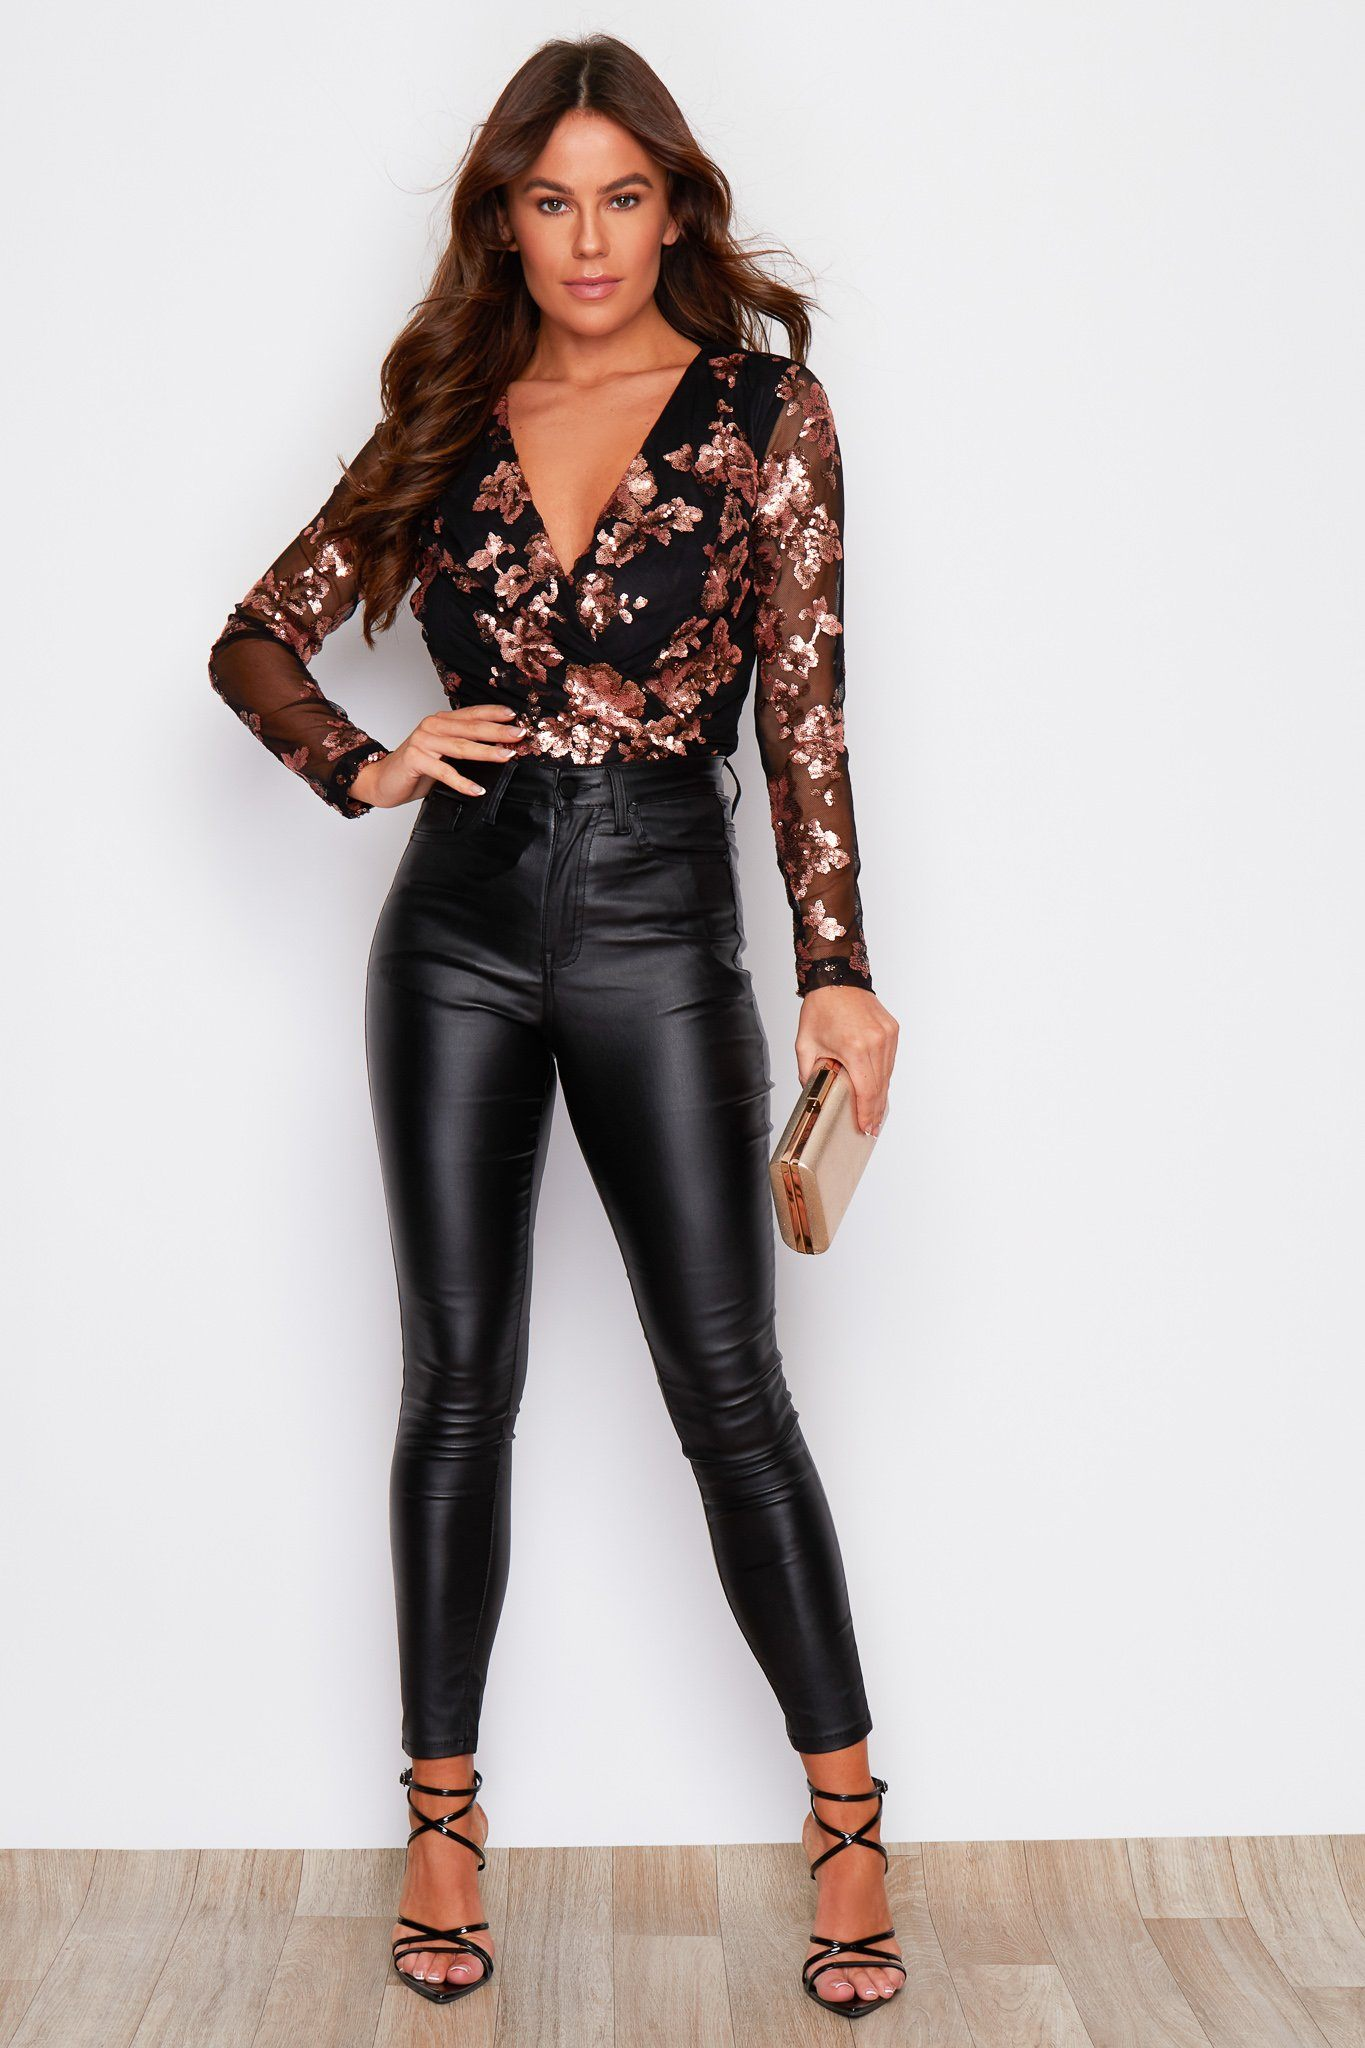 Eva Sequin Long Sleeve Bodysuit Black & Rose Gold Tops & Bodysuits Girl In Mind